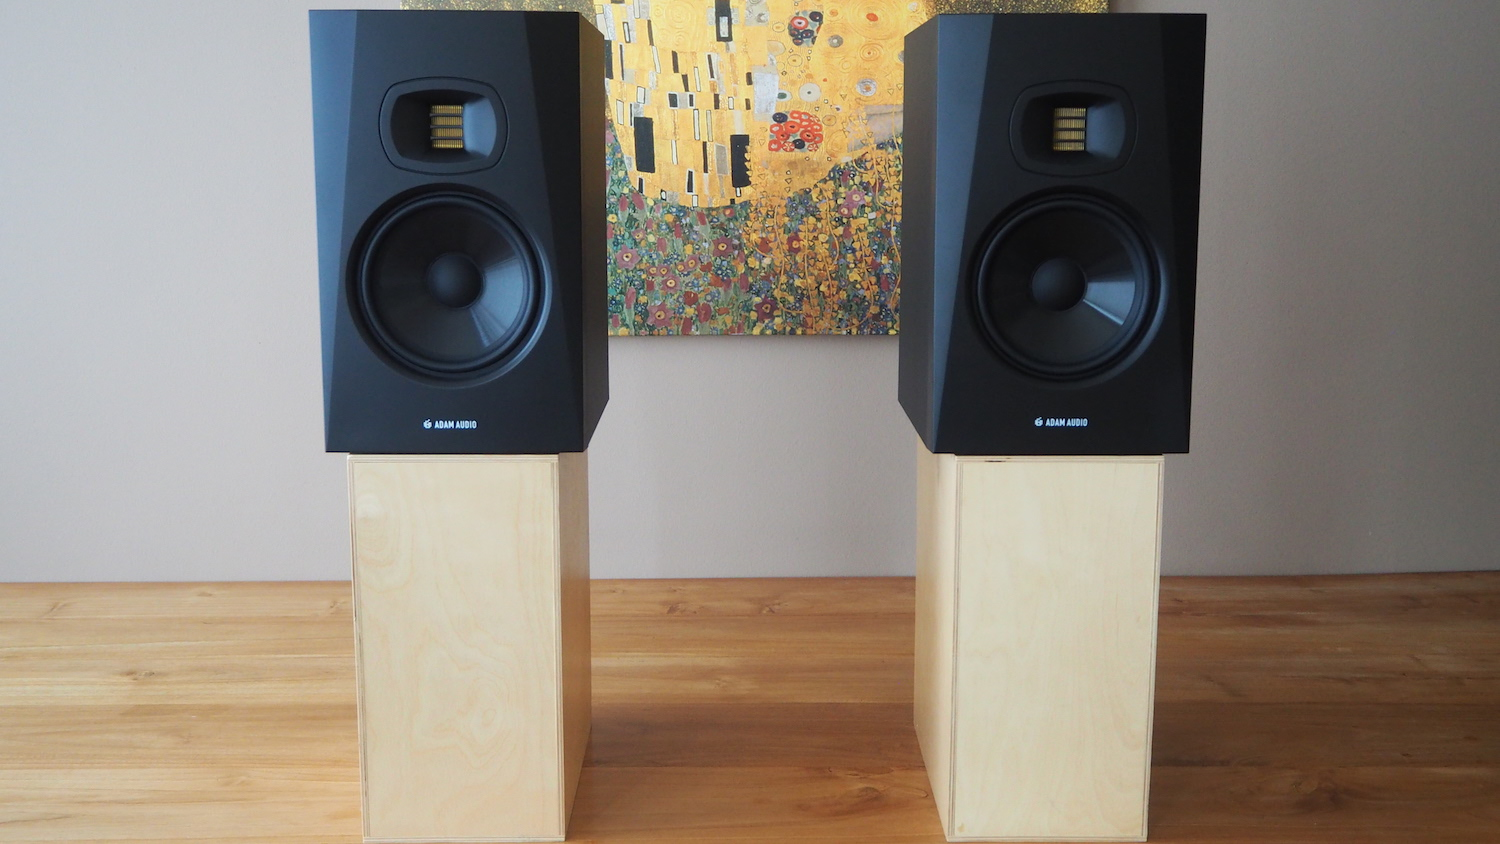 review-adam-audio-t7v-nearfield-active-studio-dj-monitor-speakers-side-by-side-the-wong-janice-cellist-music-producer-amsterdam.JPG